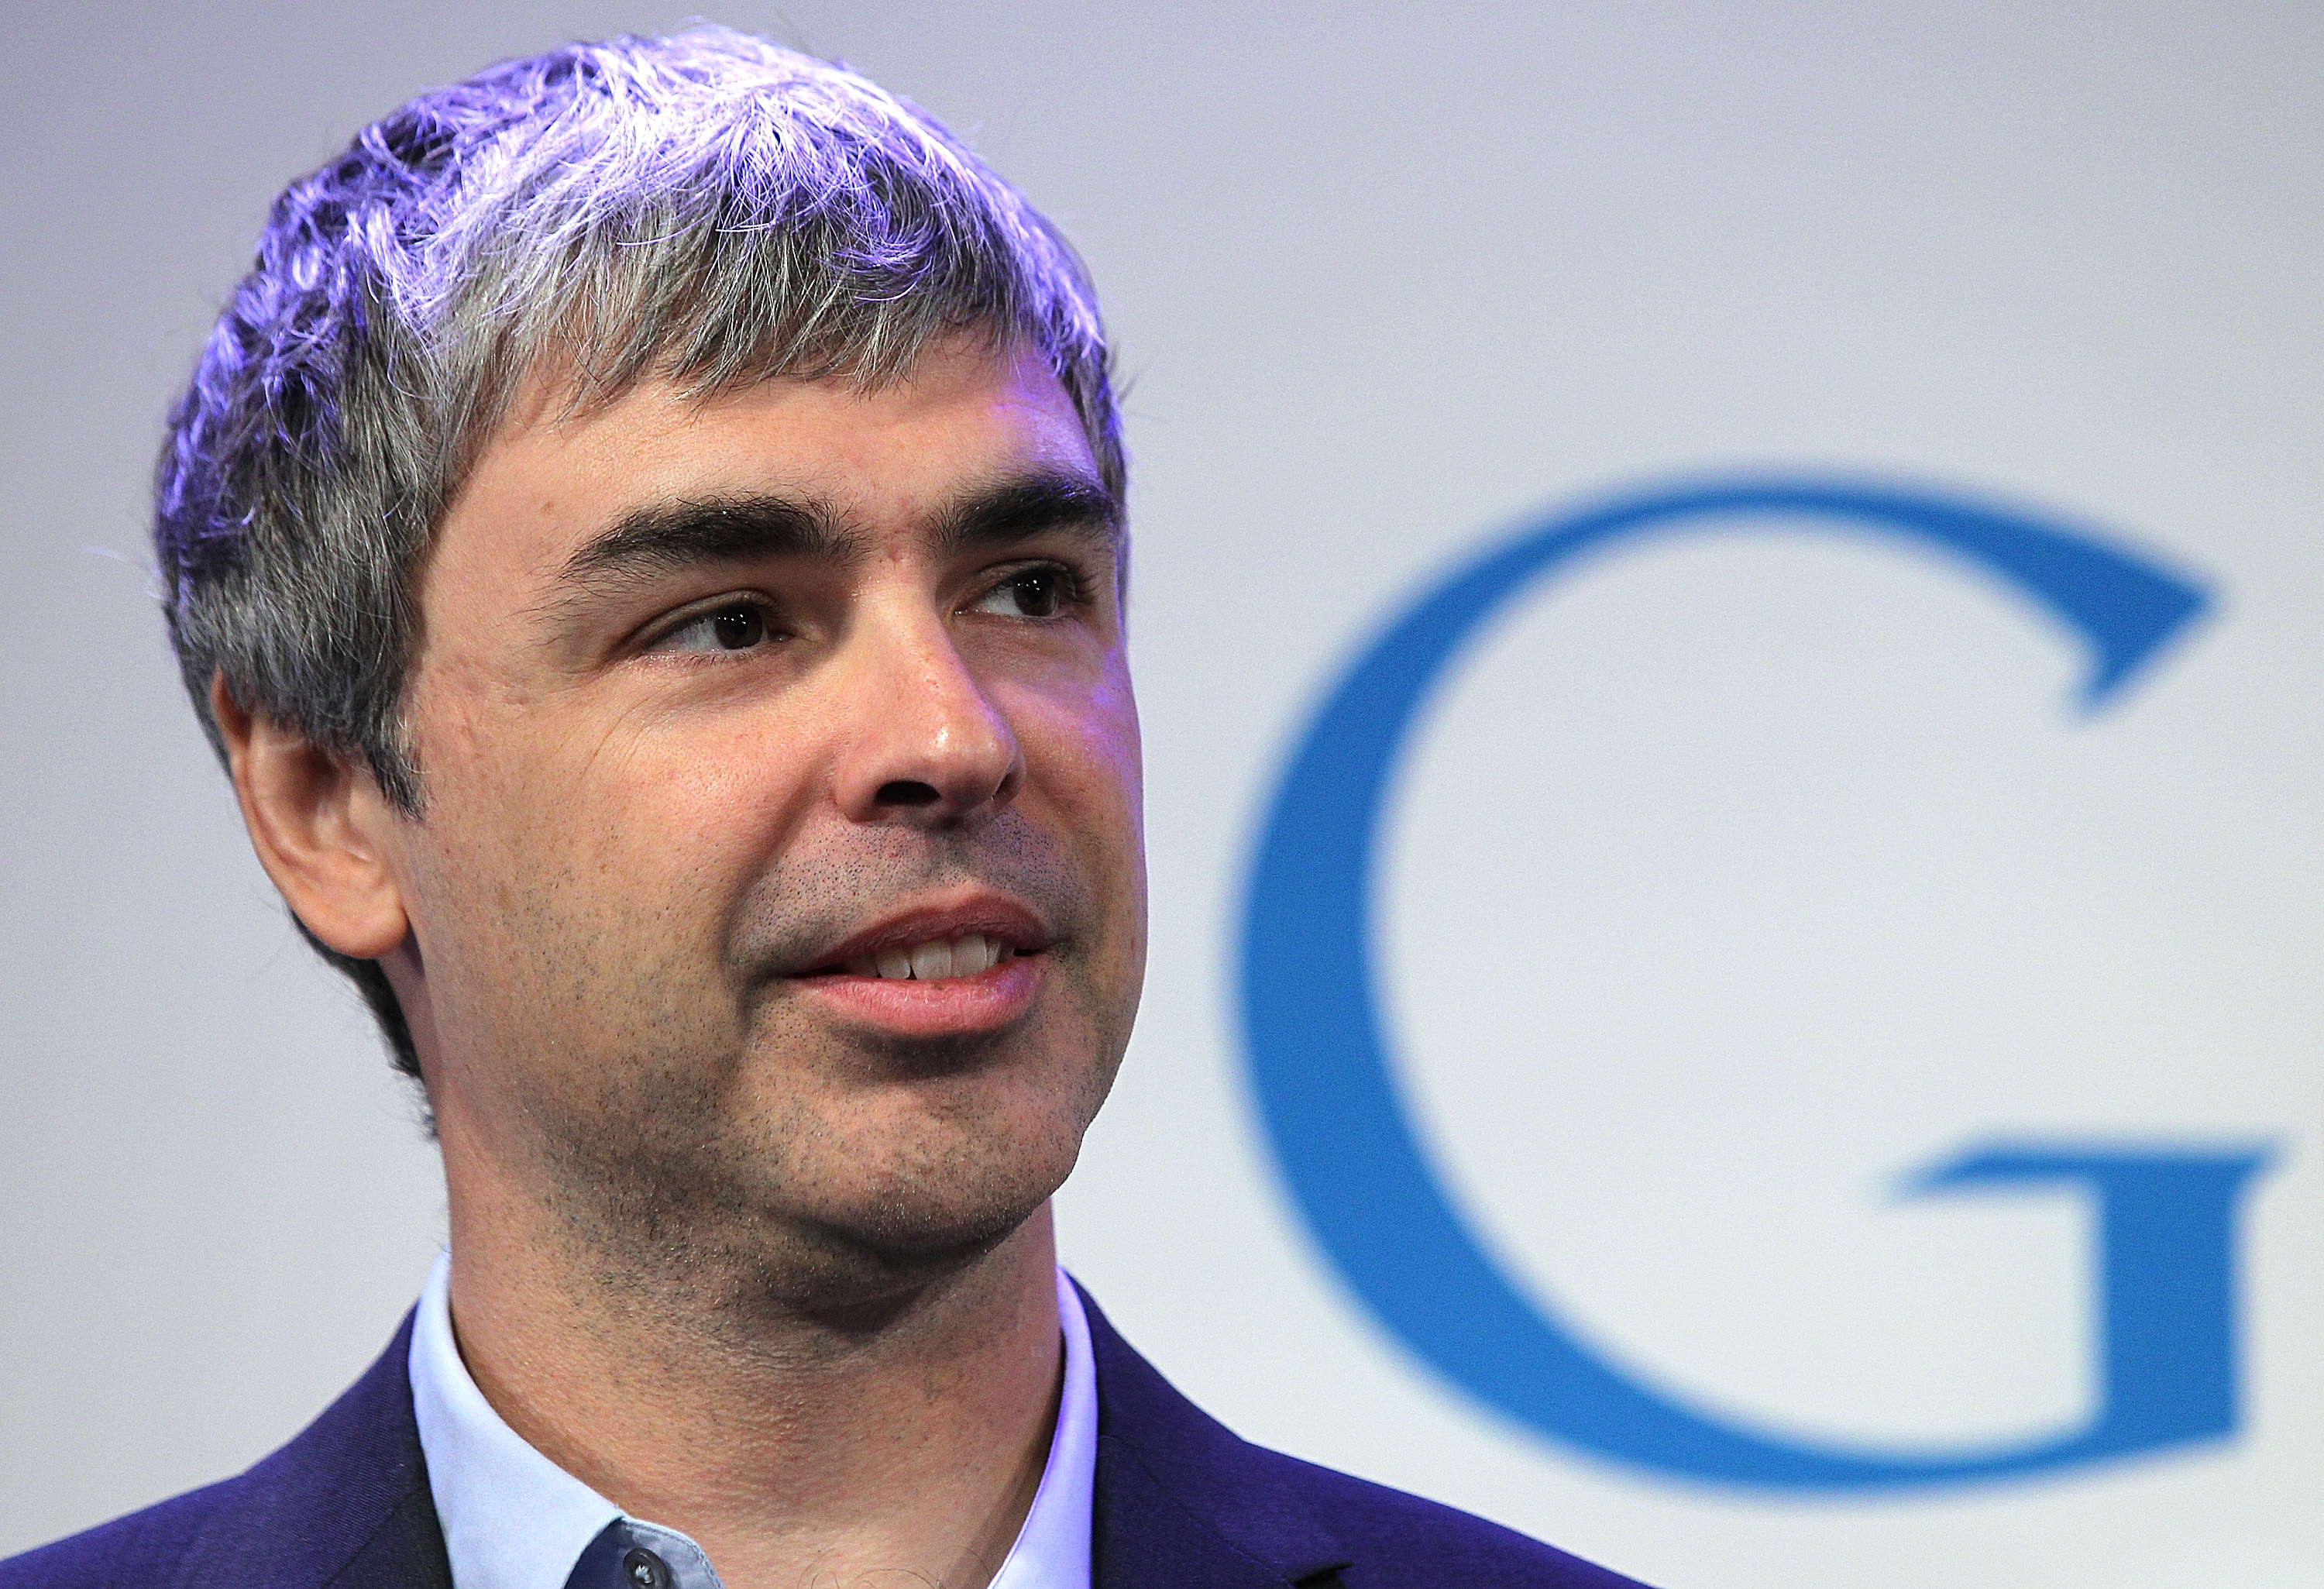 Larry Page - Engineer, Inventor - Biography.com